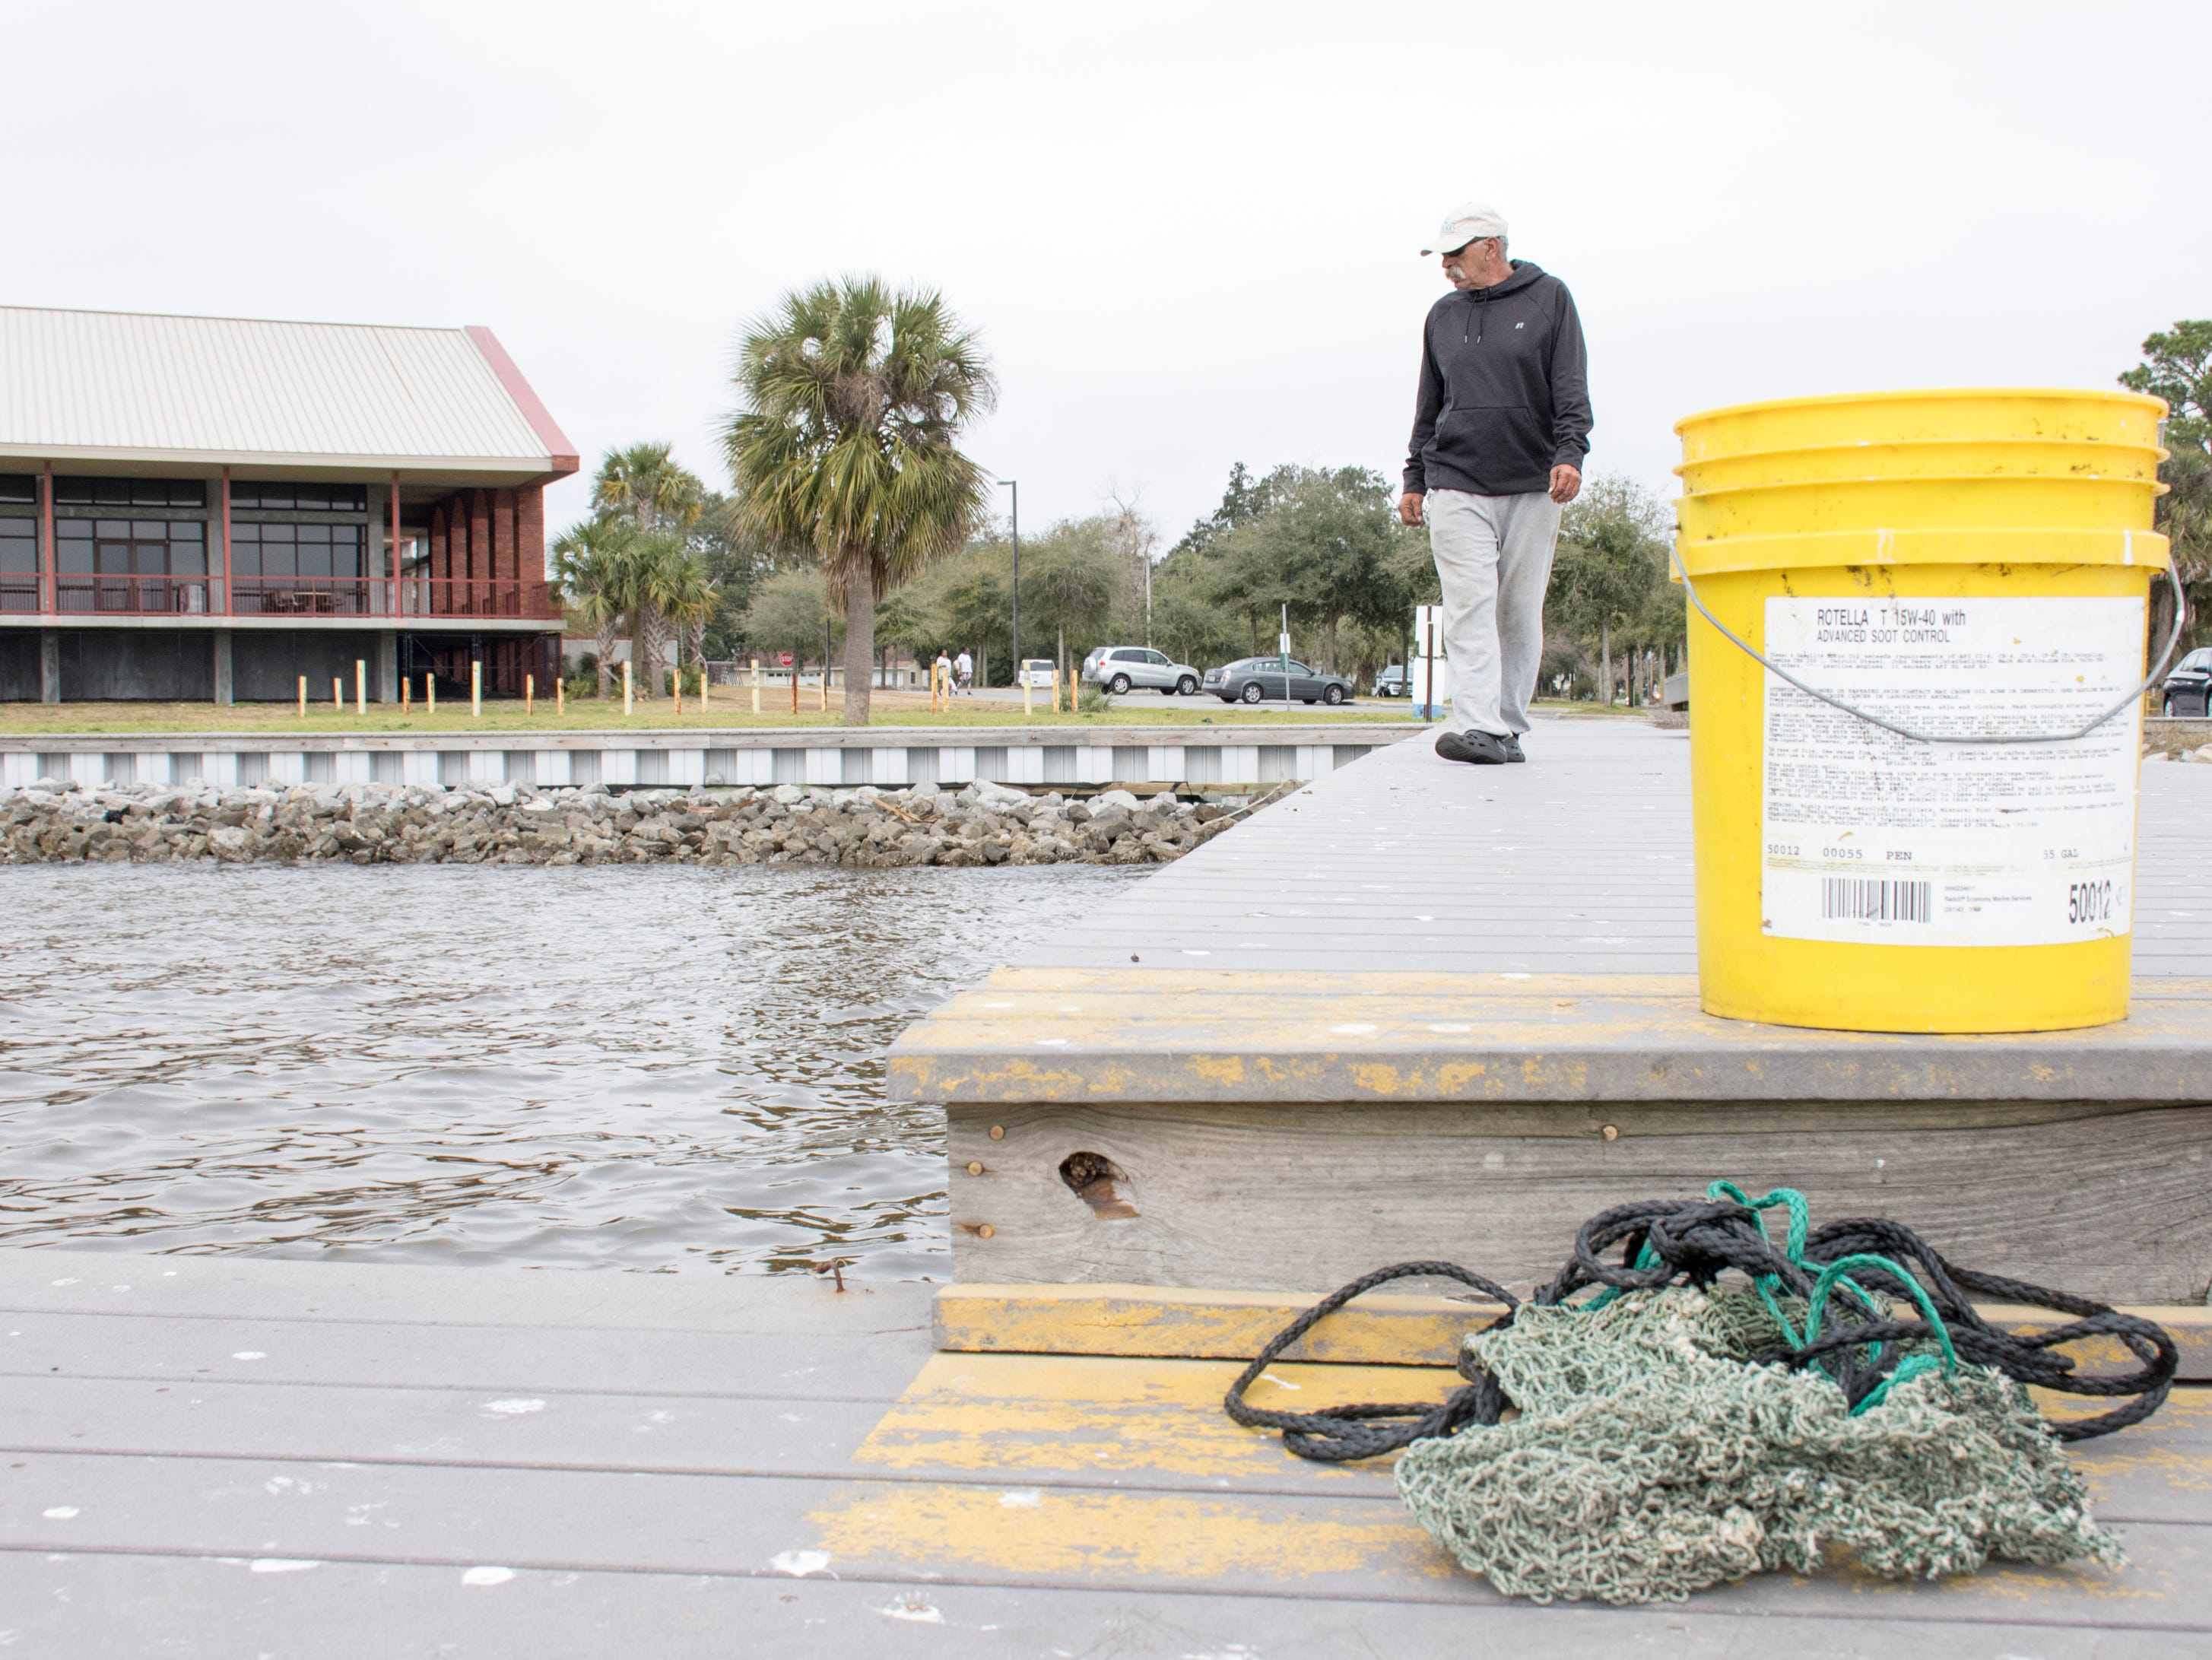 Donald Skipper looks for mullet to fish along Sanders Beach in Pensacola on Monday, February 4, 2019.  Pensacola Mayor Grover Robinson plans to ask the Pensacola City Council for $60,000 to have the landscape architecture firm SCAPE study ways to improvement access, connectivity and resiliency along the waterfront between Joe Patti's Seafood to Bayou Chico. If approved, the funding would extend the boundaries of an existing SCAPE funded by Pensacola entrepreneur and philanthropist Quint Studer.